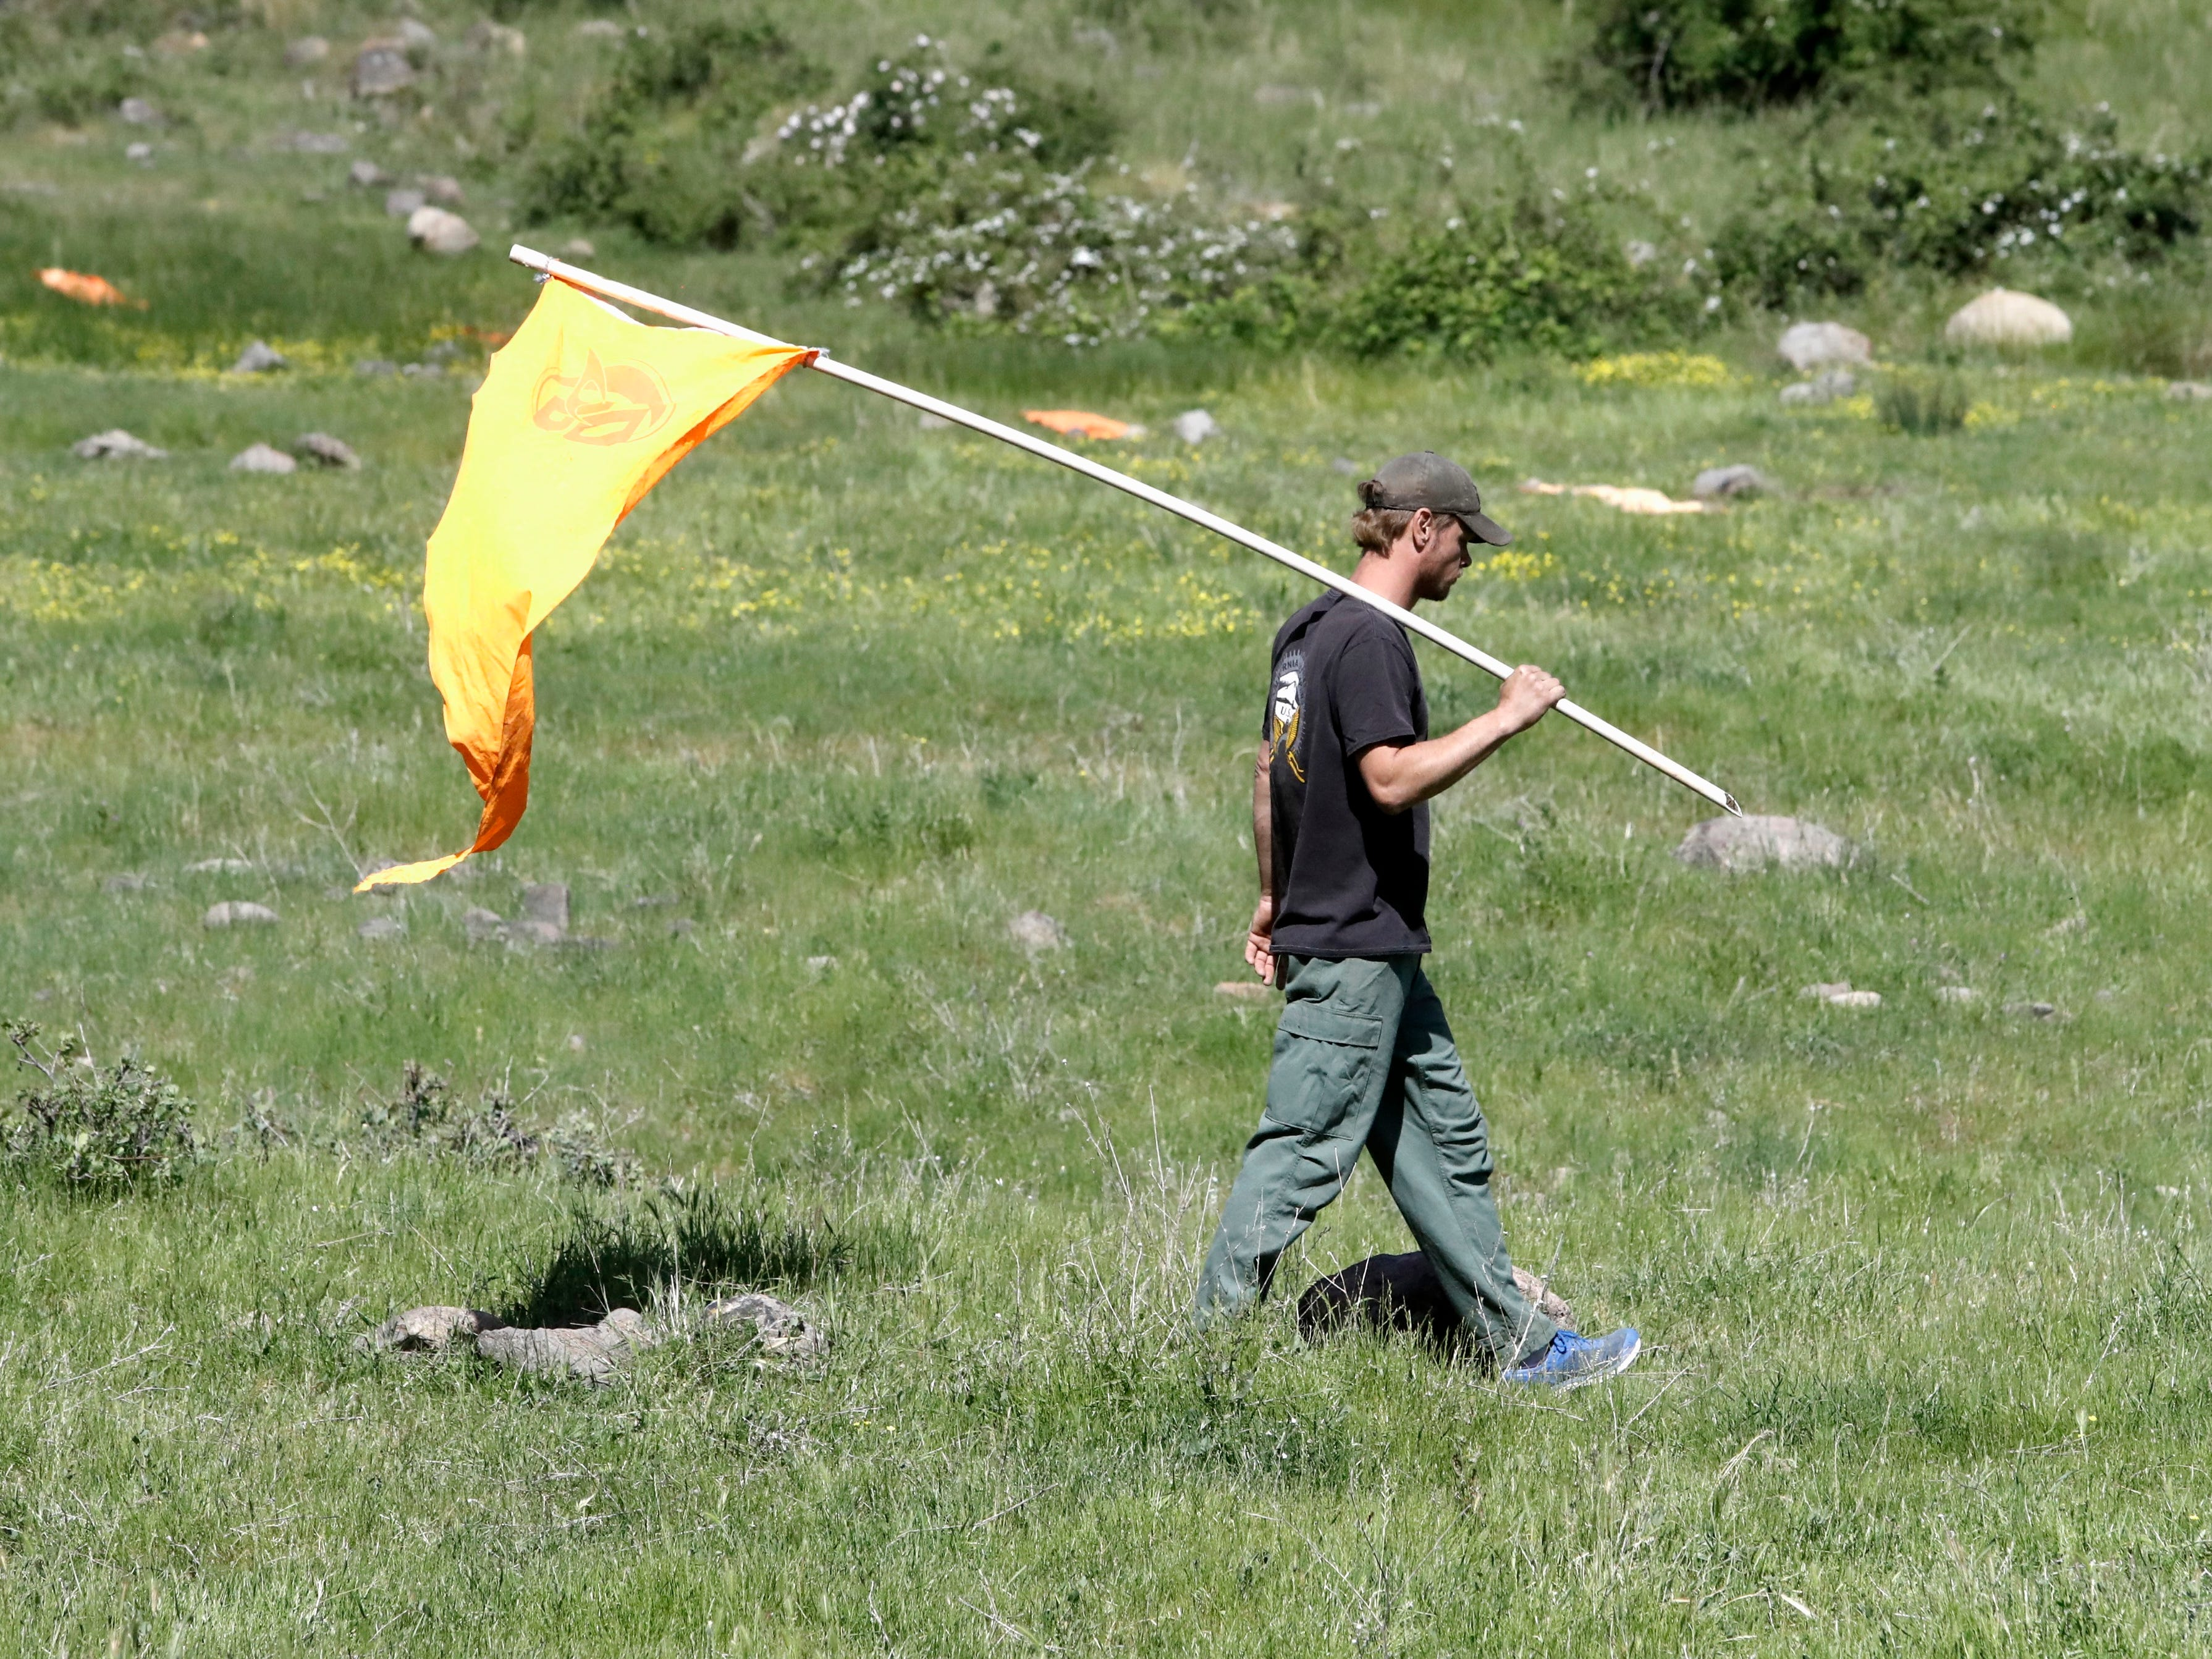 Planting a flag to gauge wind speed for a smokejumper landing.